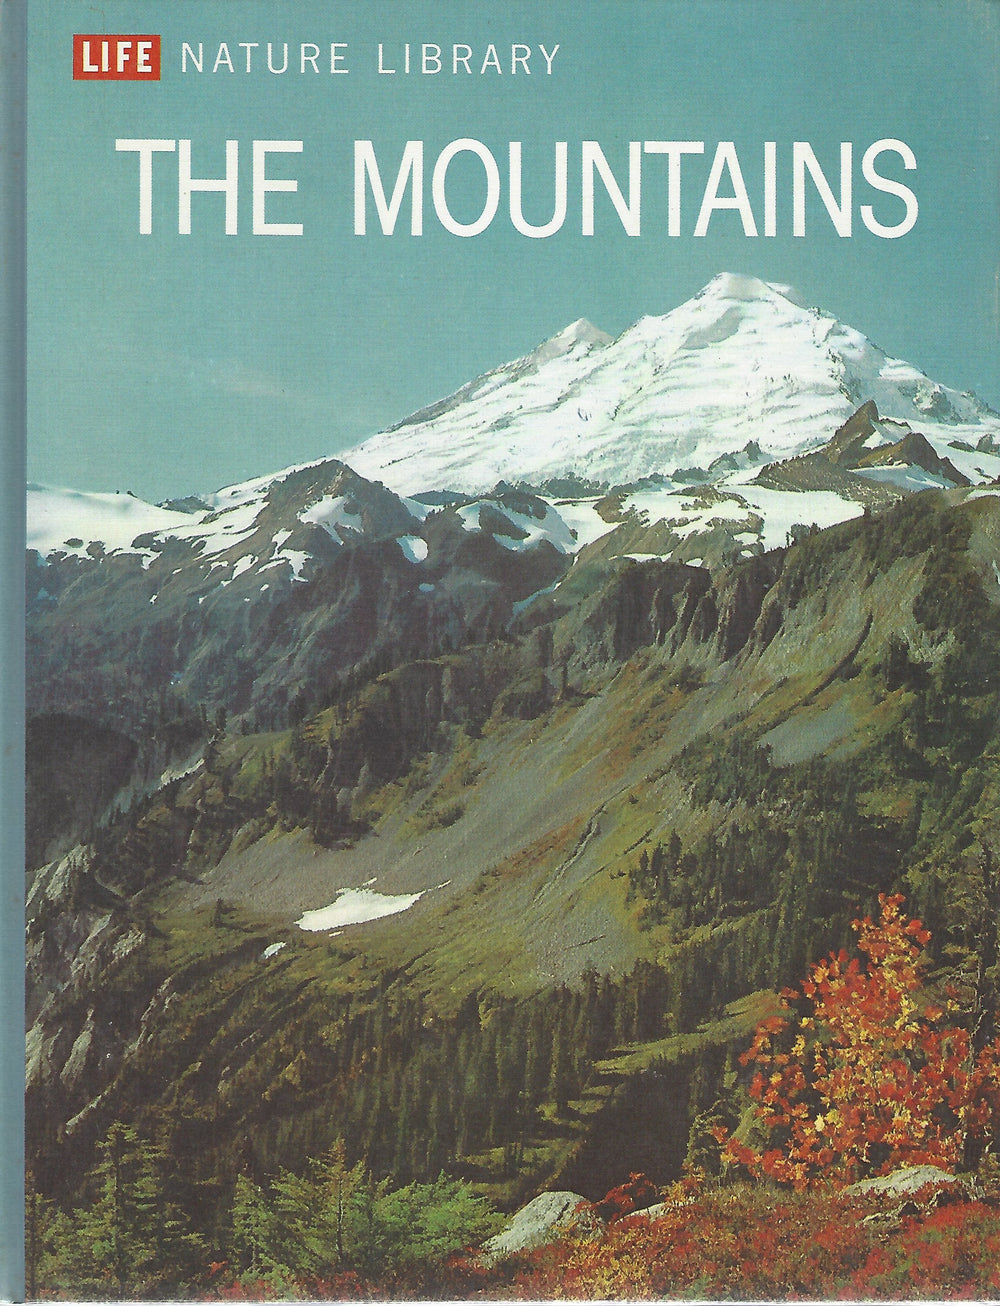 TIME LIFE: Nature Library; The Mountains by Lorus J. Milne and Margery Milne (1962)